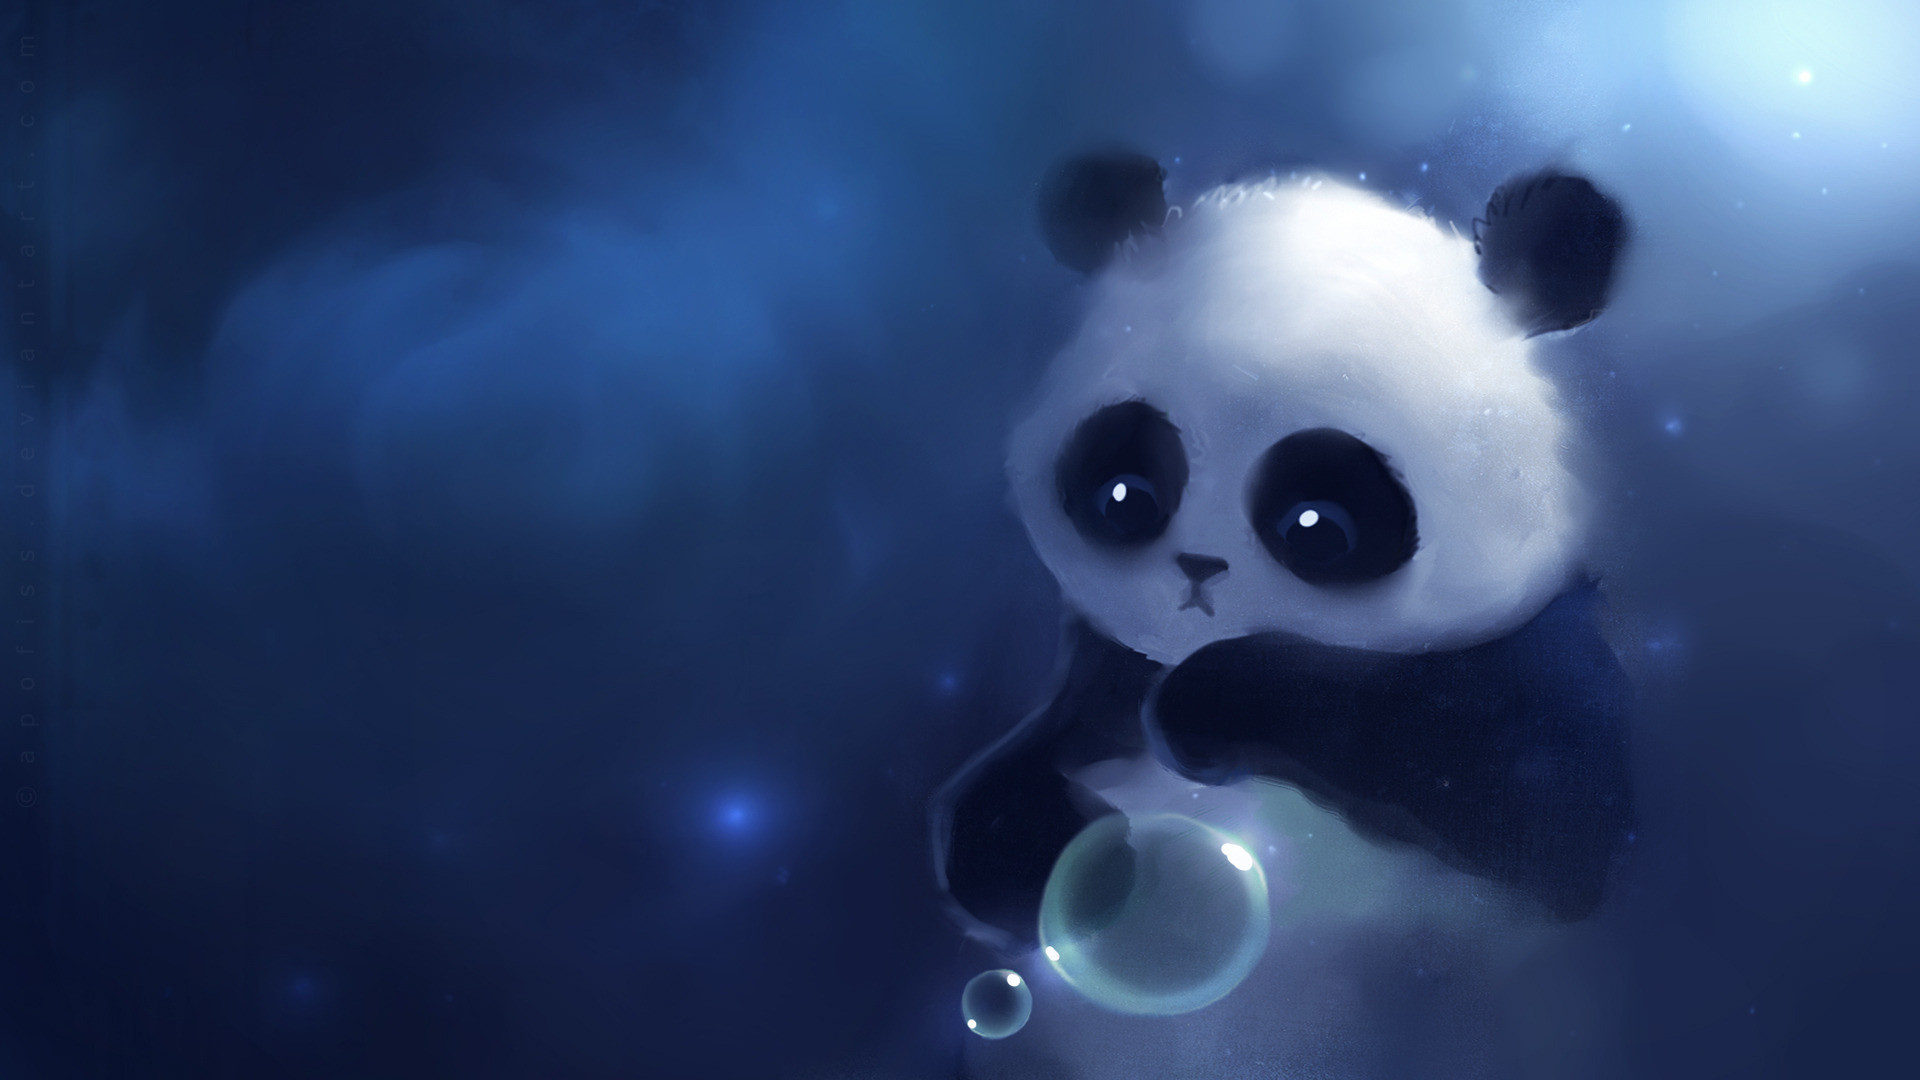 1920x1080 anime panda wallpaper high resolution with high resolution wallpaper on  anime category similar with 1080p 1600x900